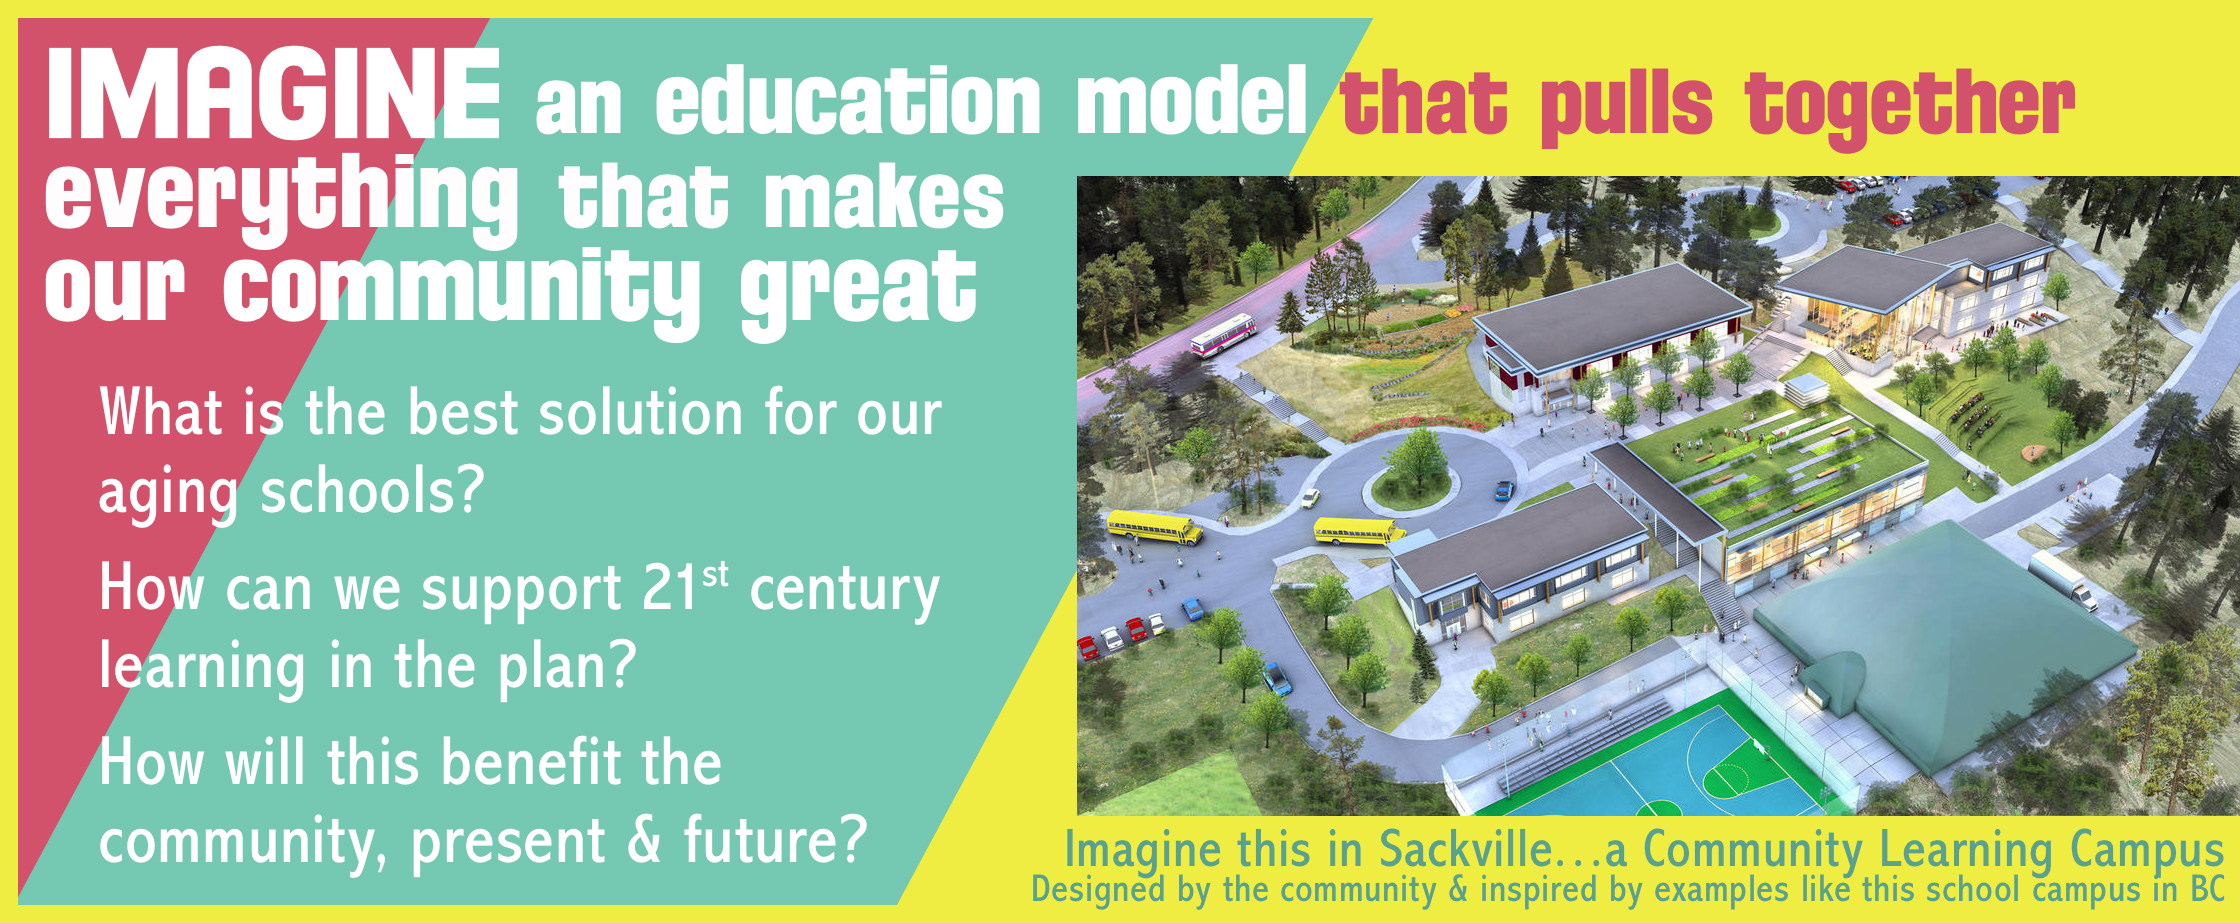 The community can work together to design amazing learning spaces in our town!